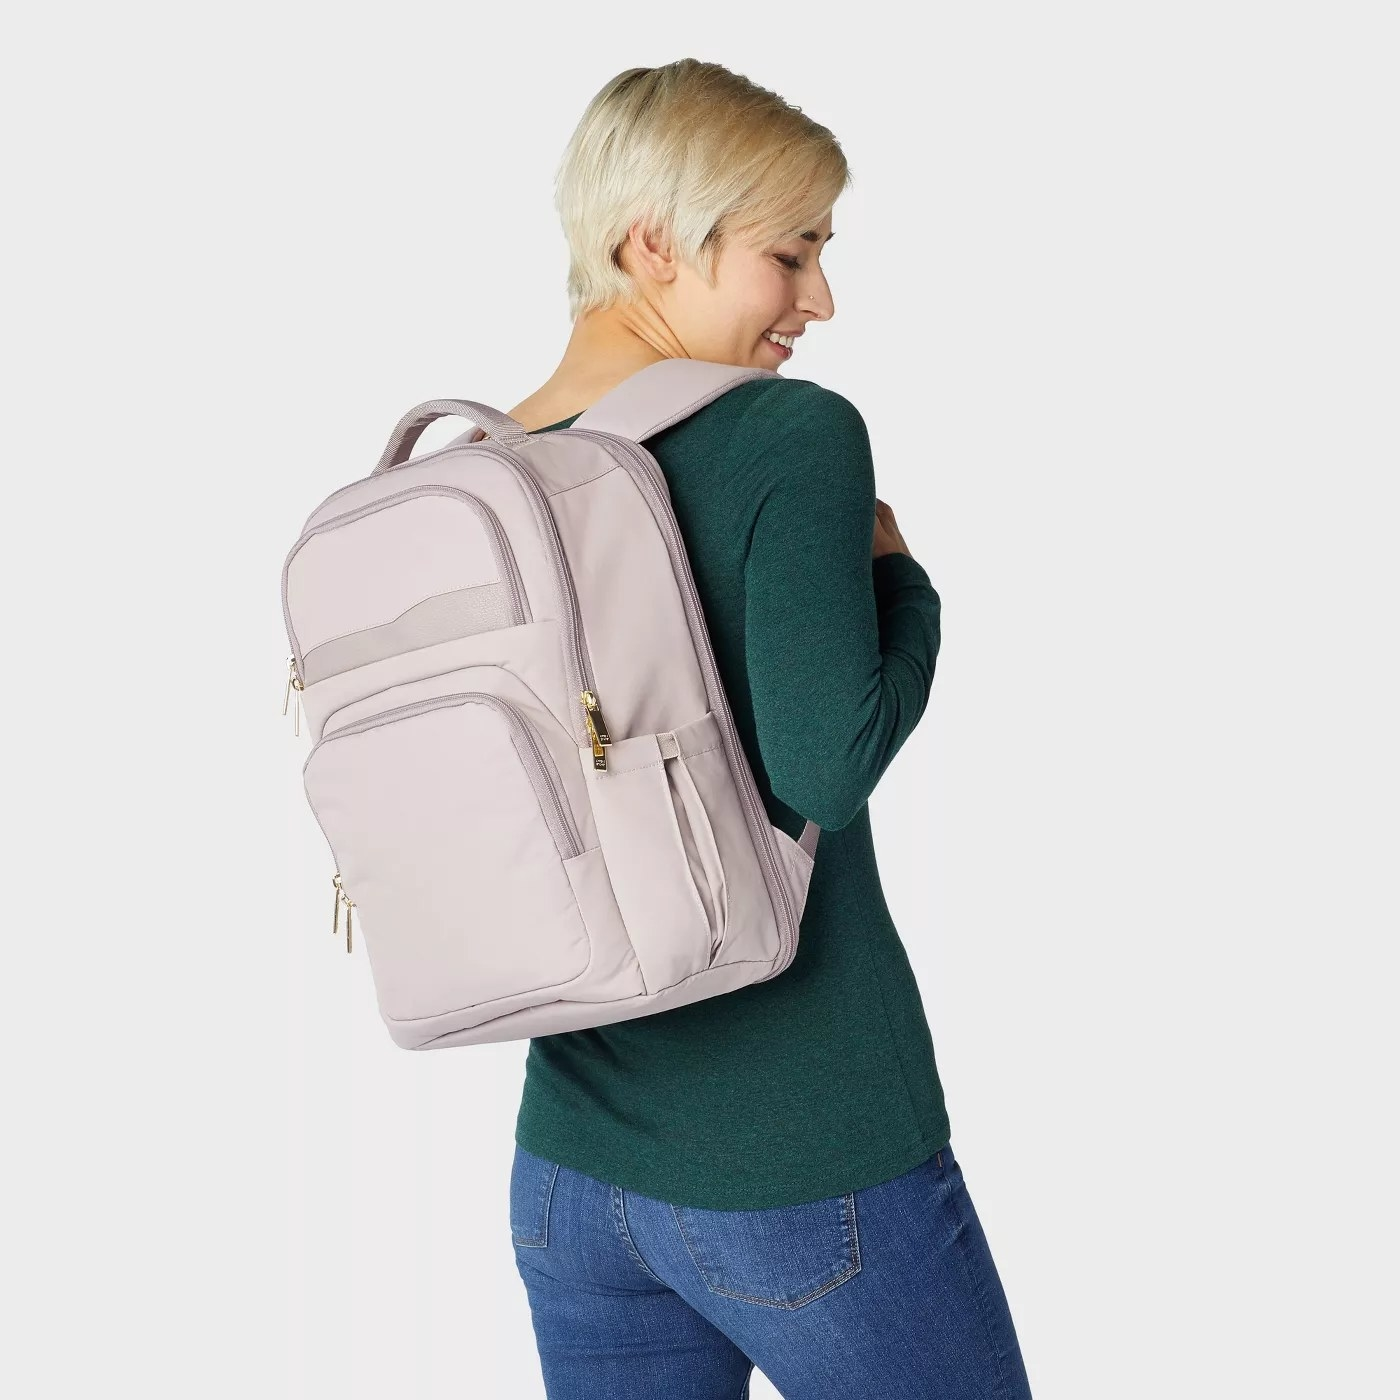 The pink backpack